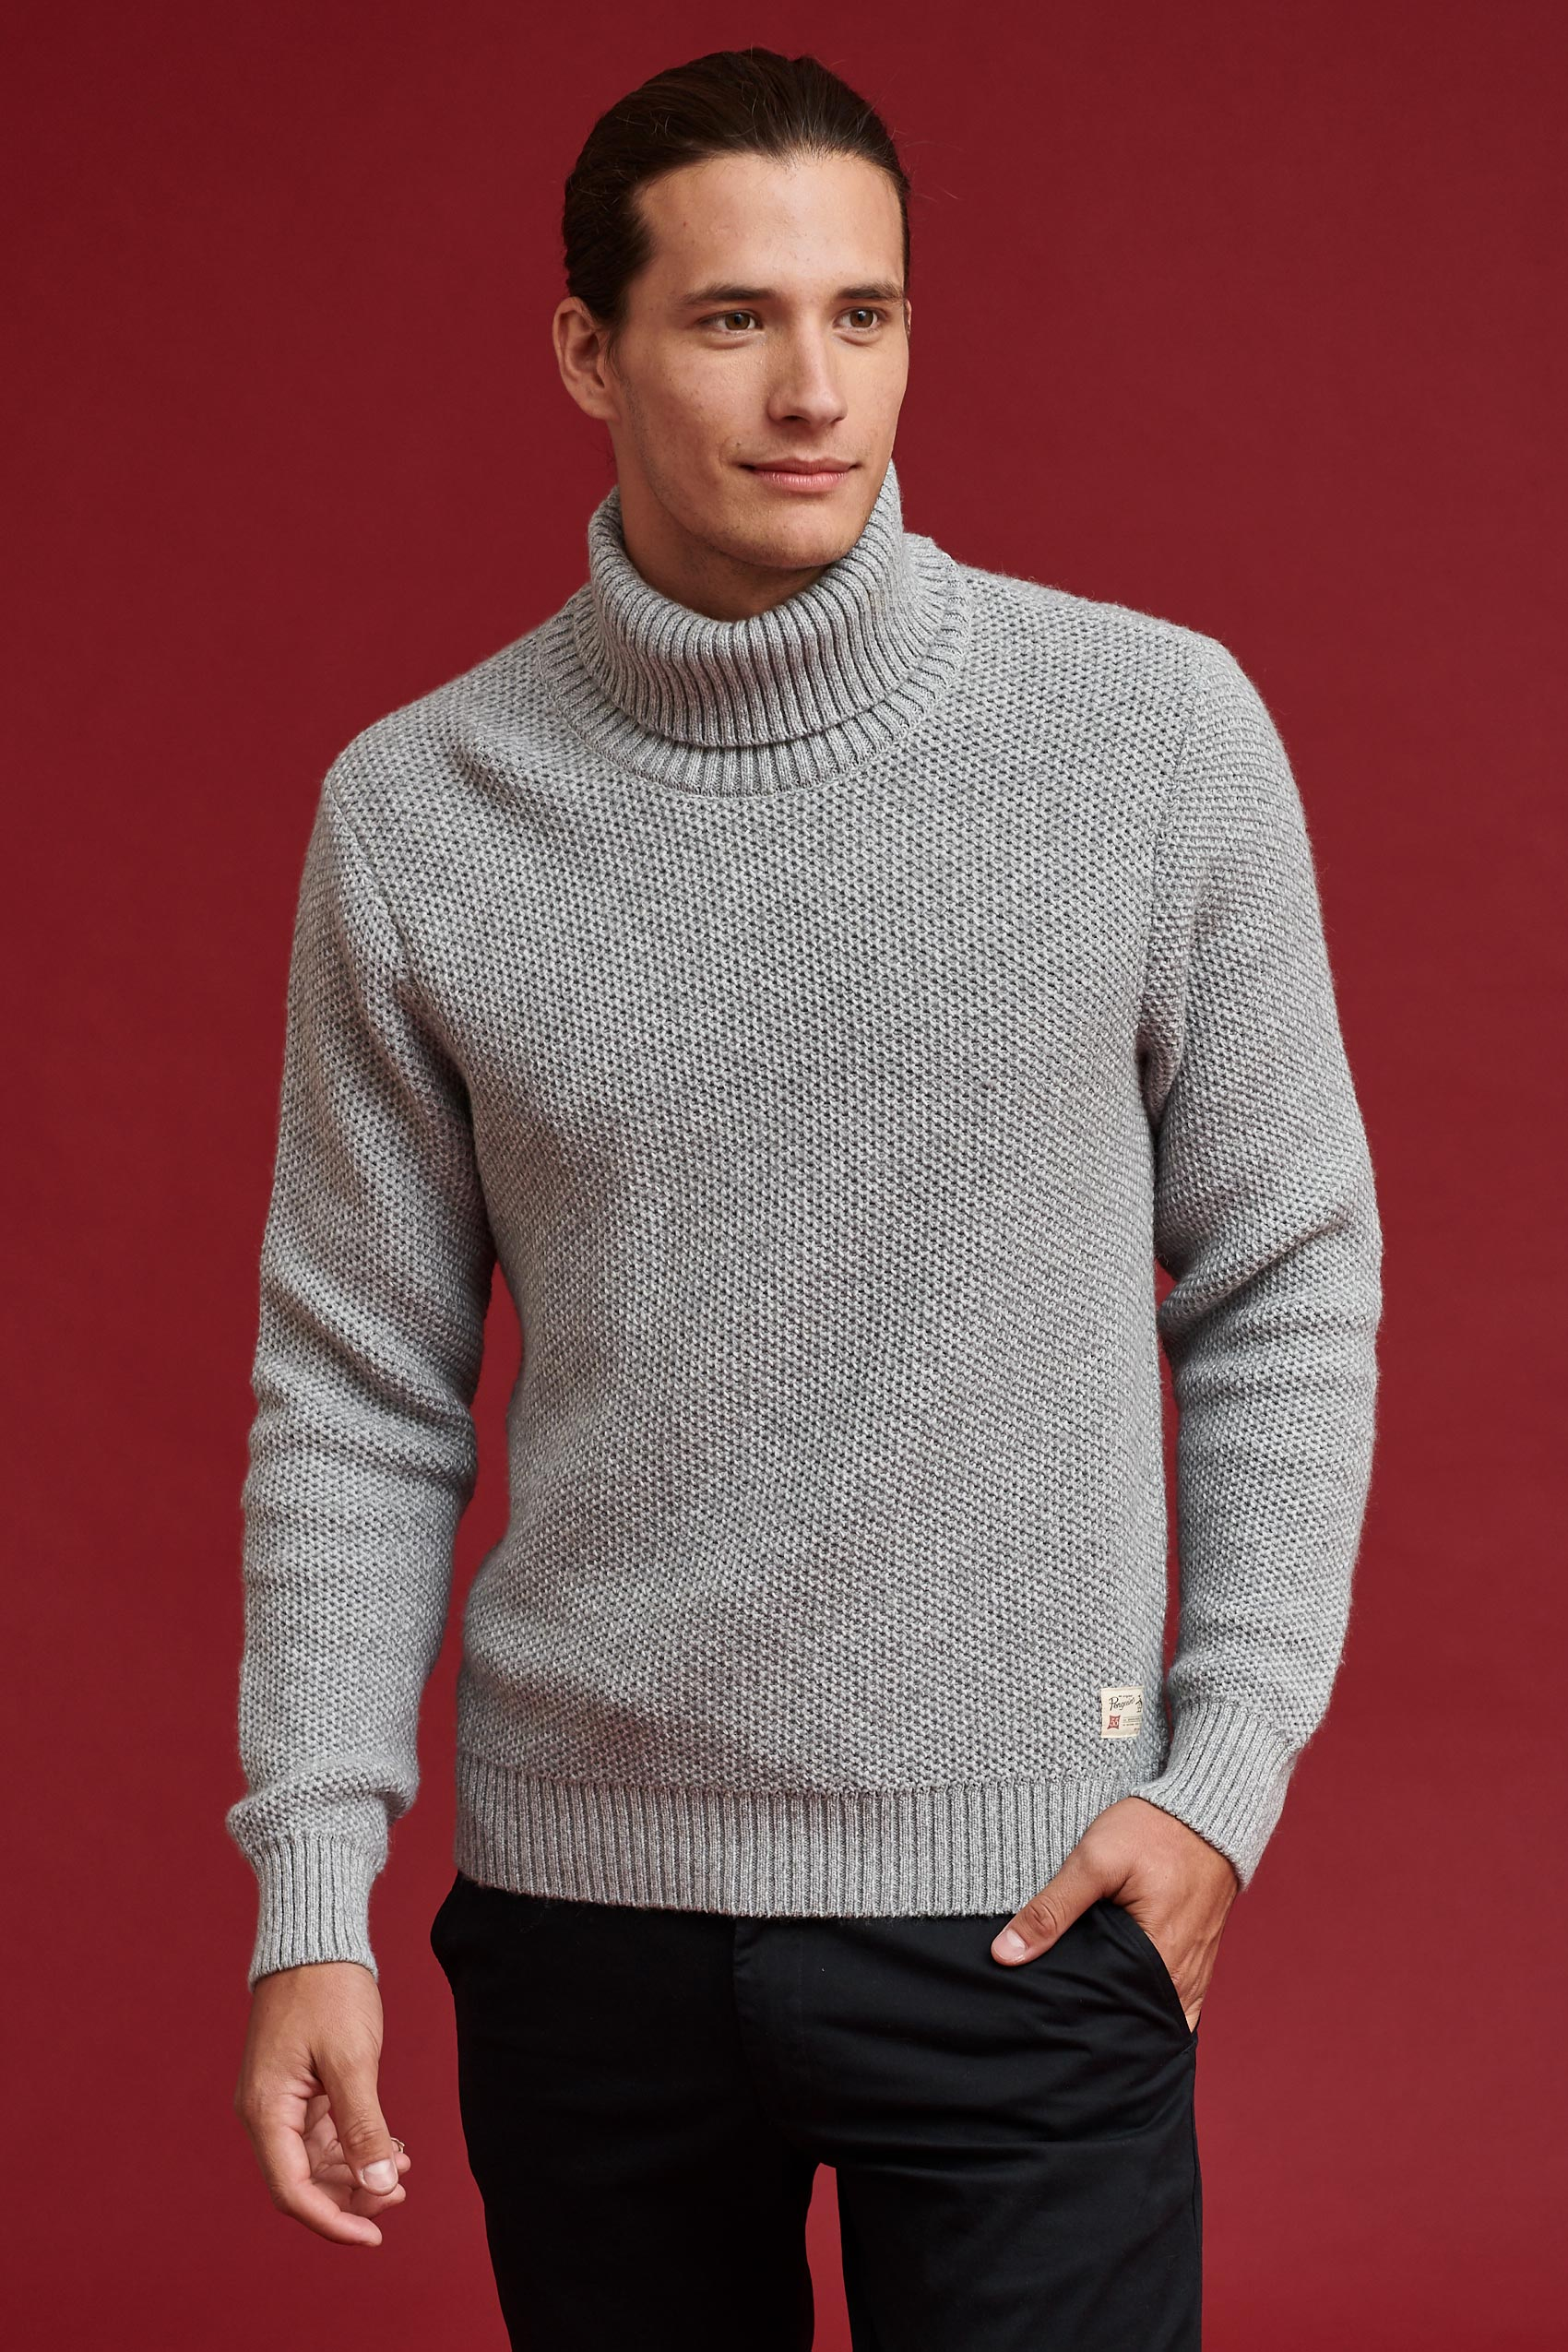 penguin_rollneck-sweater_59-13-2020__picture-14739